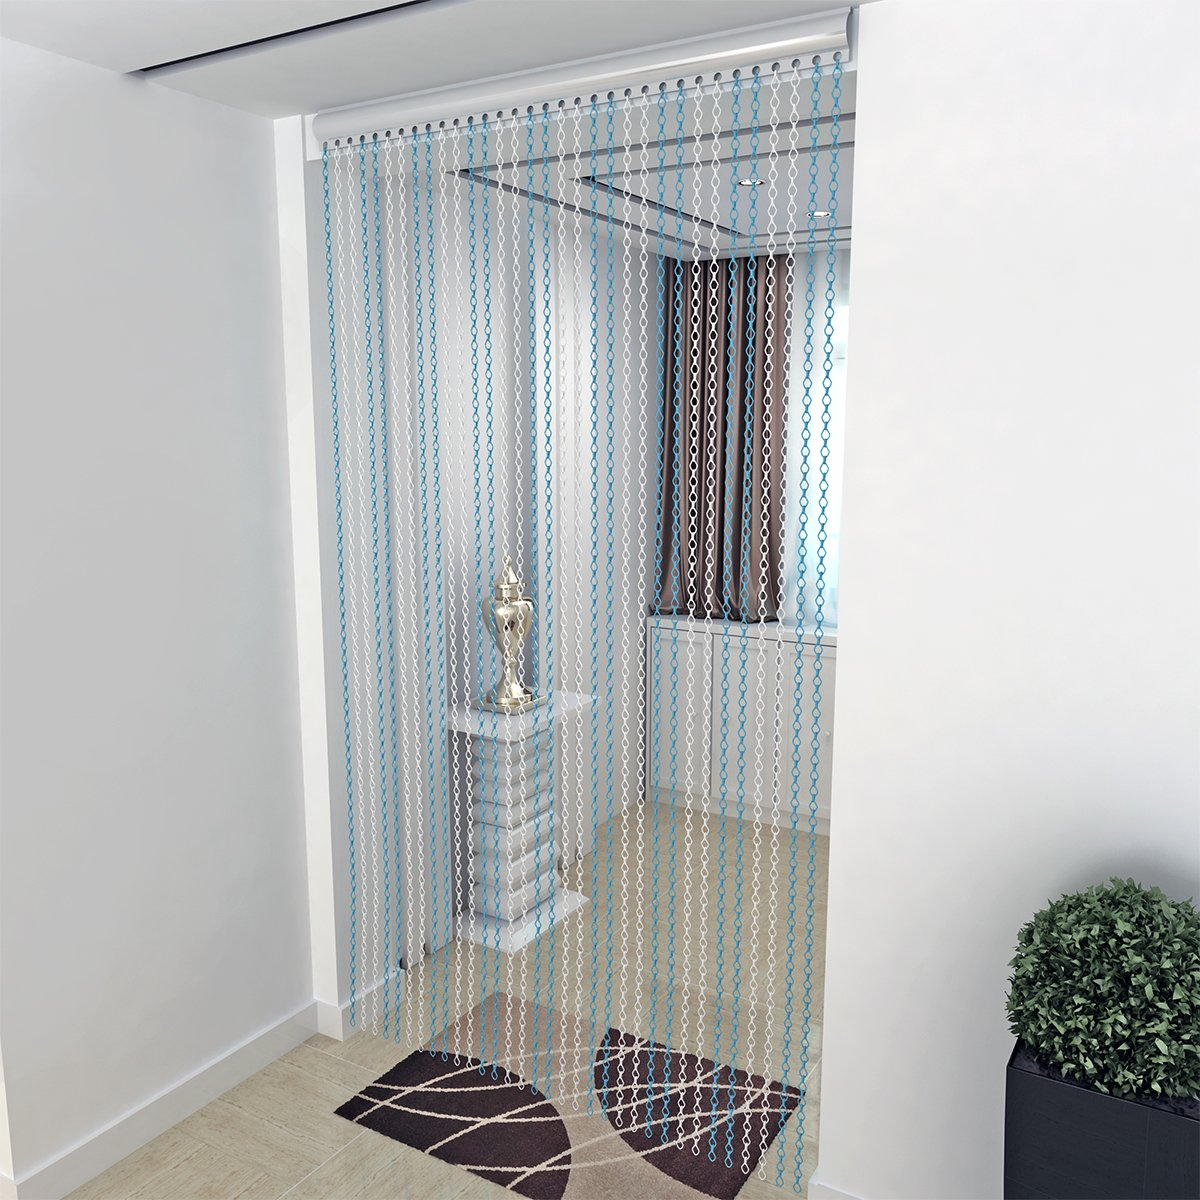 Premium Aluminium Chain Link Fly Curtain, Insect Door Screen Blue+Siver 90cm x 210cm by panana Songtree